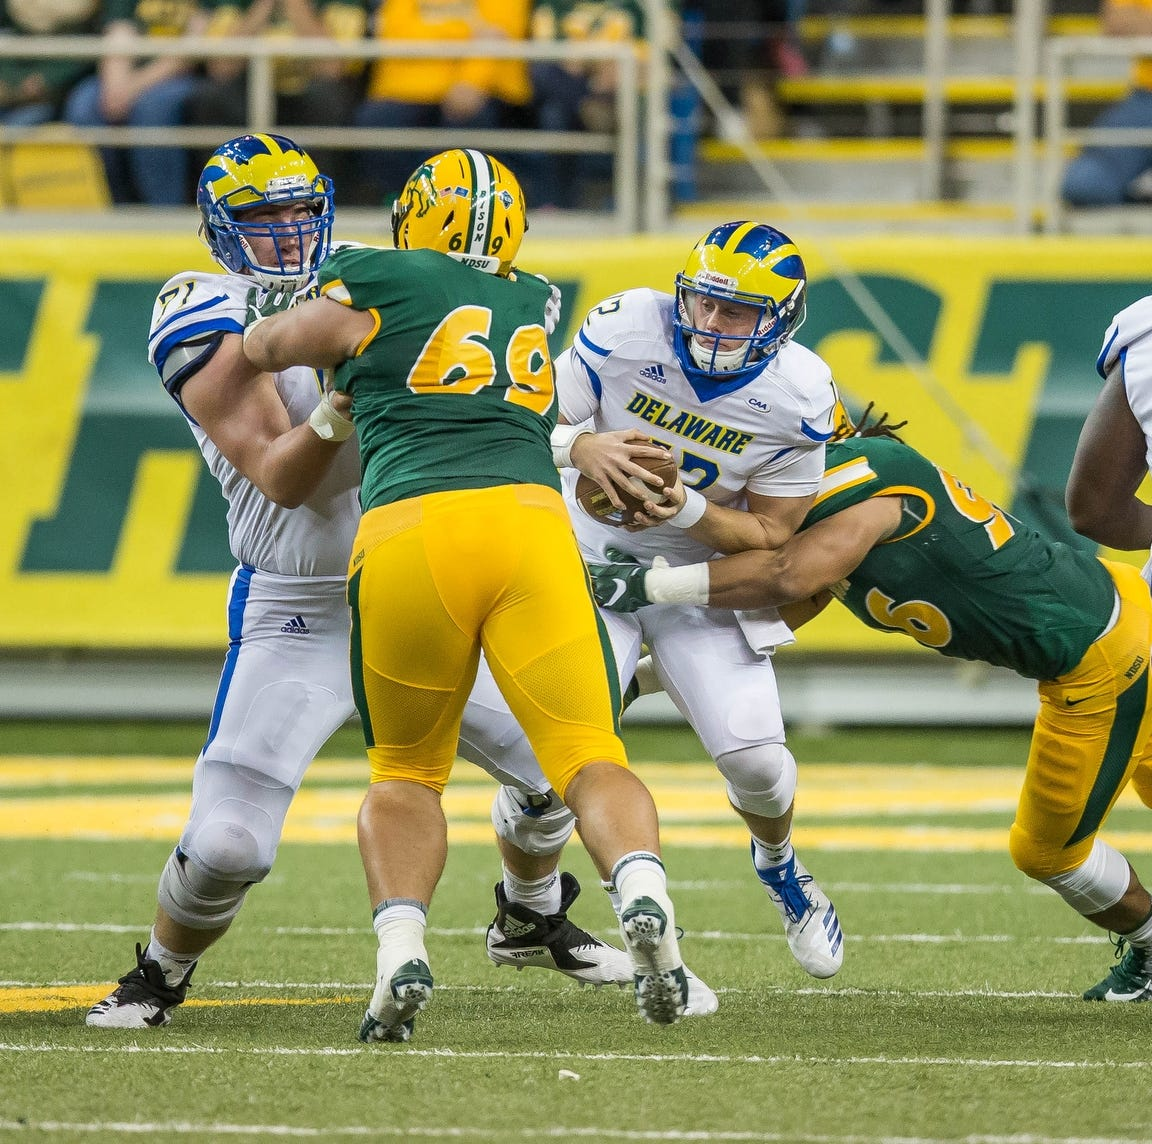 Delaware-North Dakota State 5 Takeaways: Blue Hens had to be better